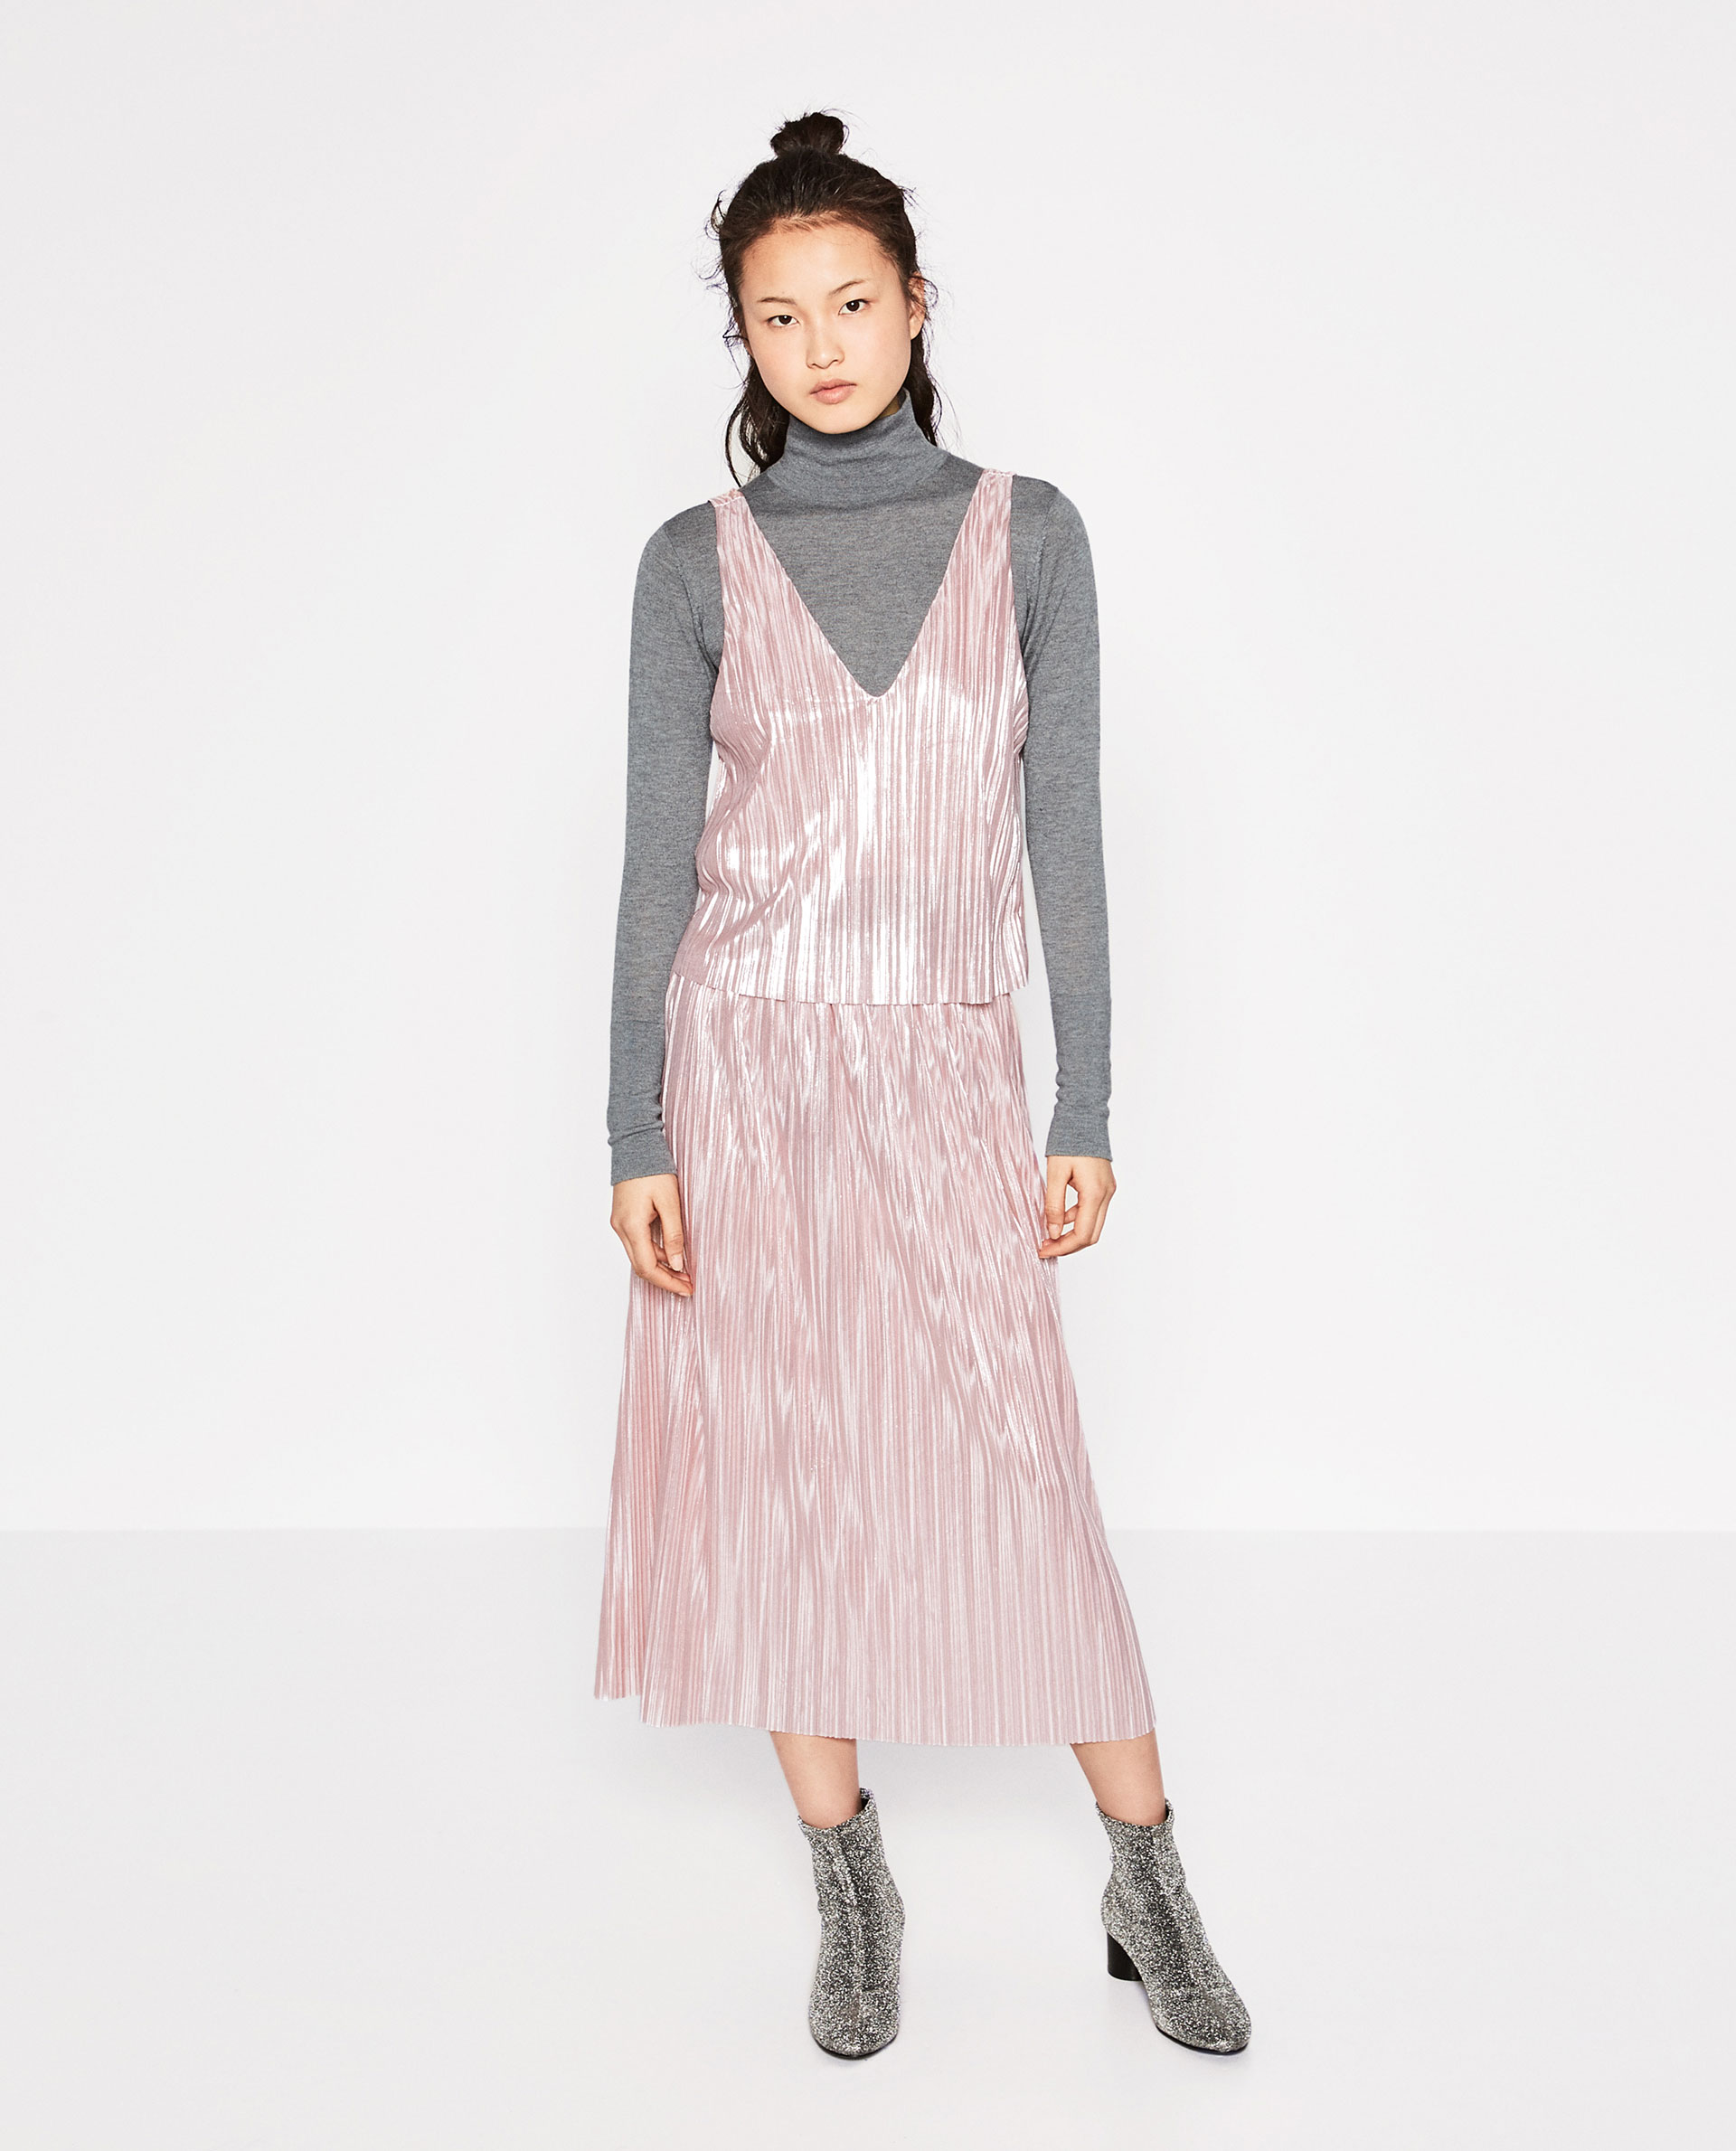 zara, maxi dress, shinny, metalic, pink, light pink, layering, layered, long sleeve top, ankle boots